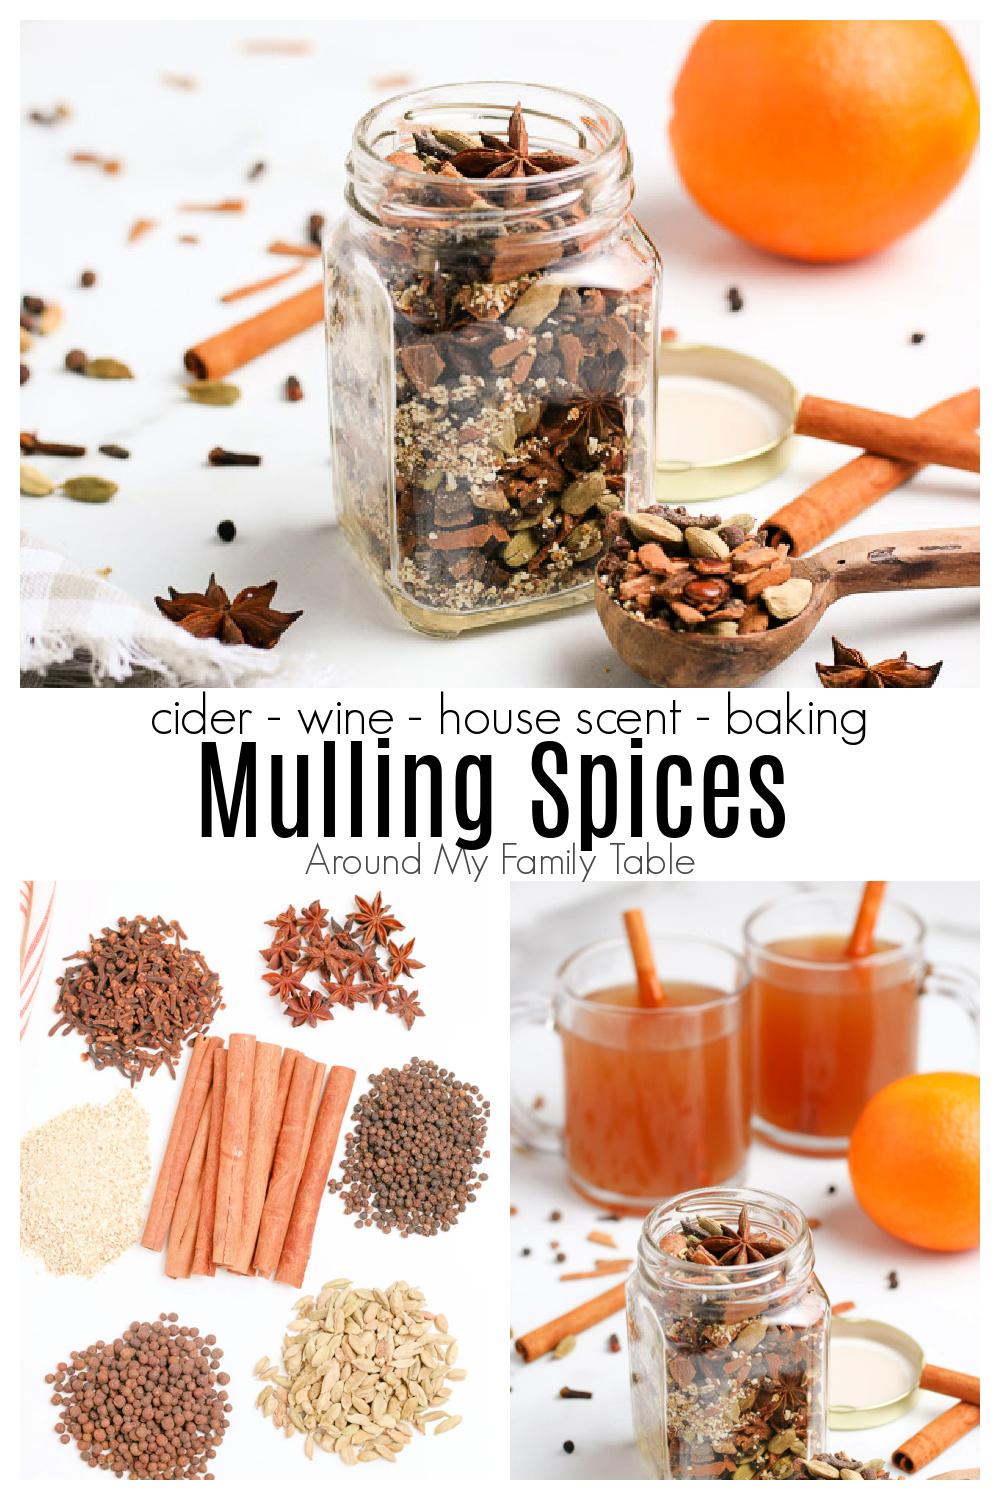 My Mulling Spices Recipe is perfect for fall.  It has all the spices you think of when you think of fall, like cinnamon, allspice, cloves, cardamon, and more.  via @slingmama